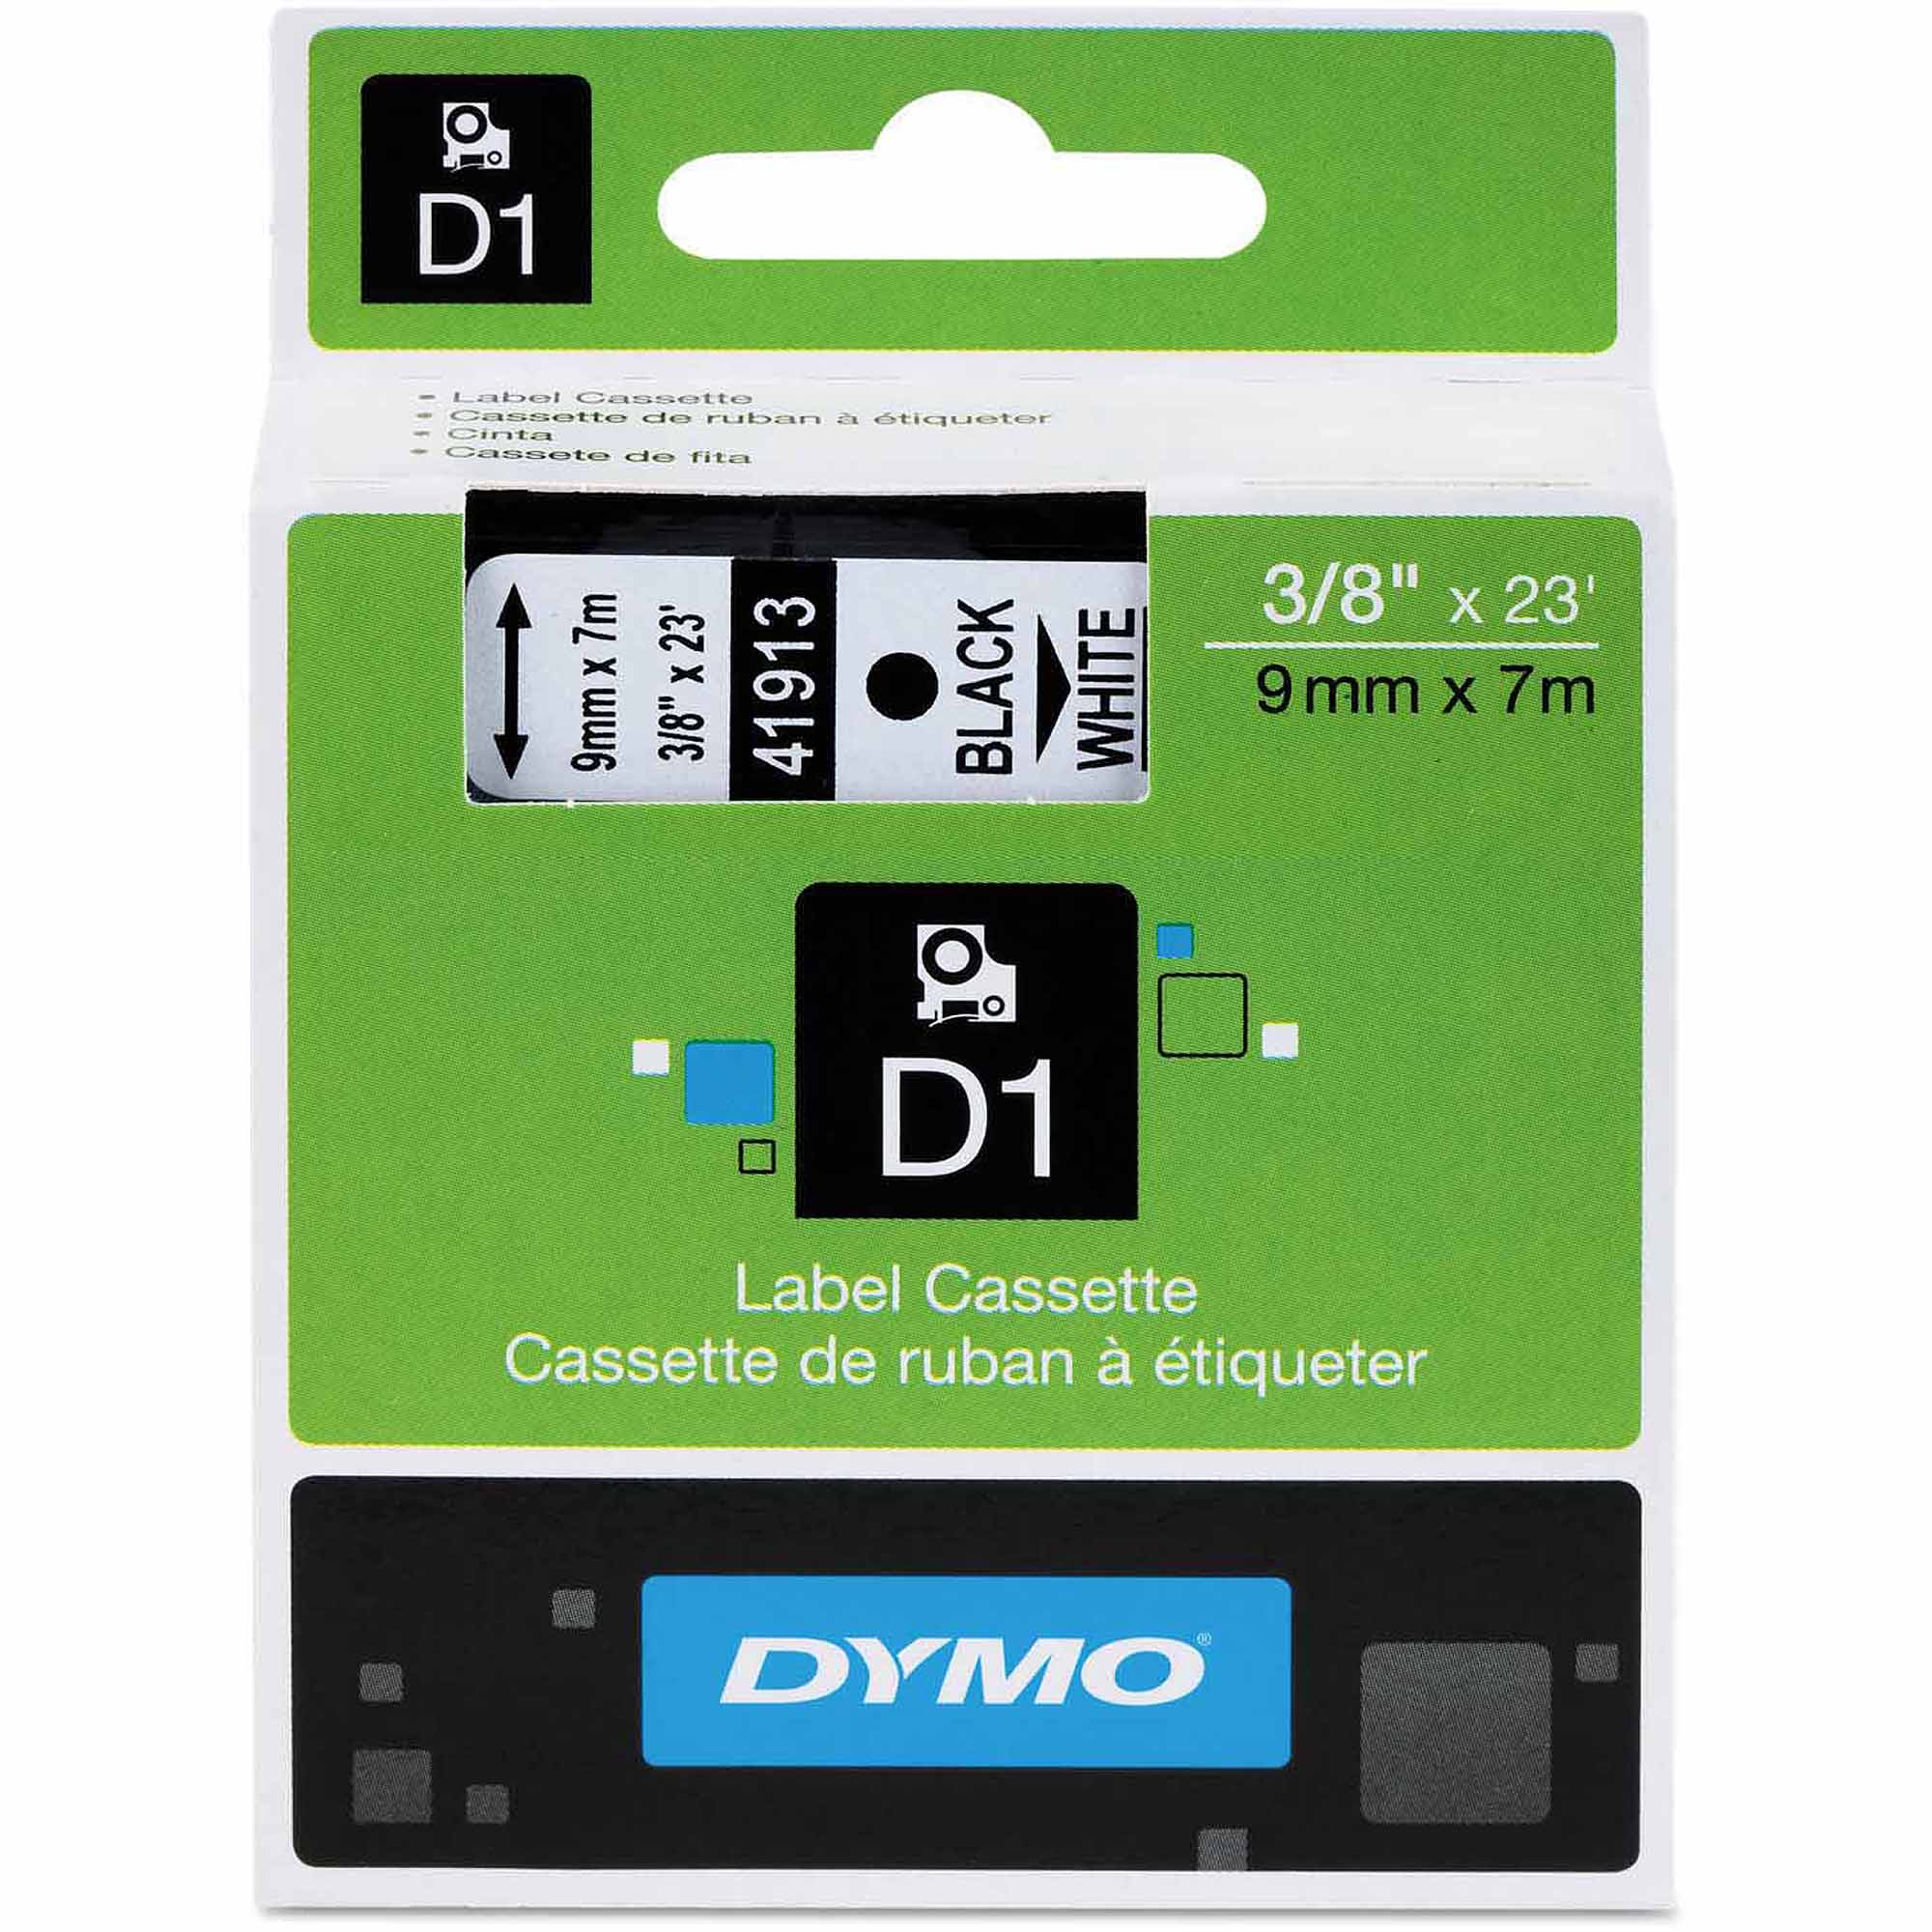 "DYMO D1 Standard Tape Cartridge for Dymo Label Makers, 3/8"" x 23', Black on White"